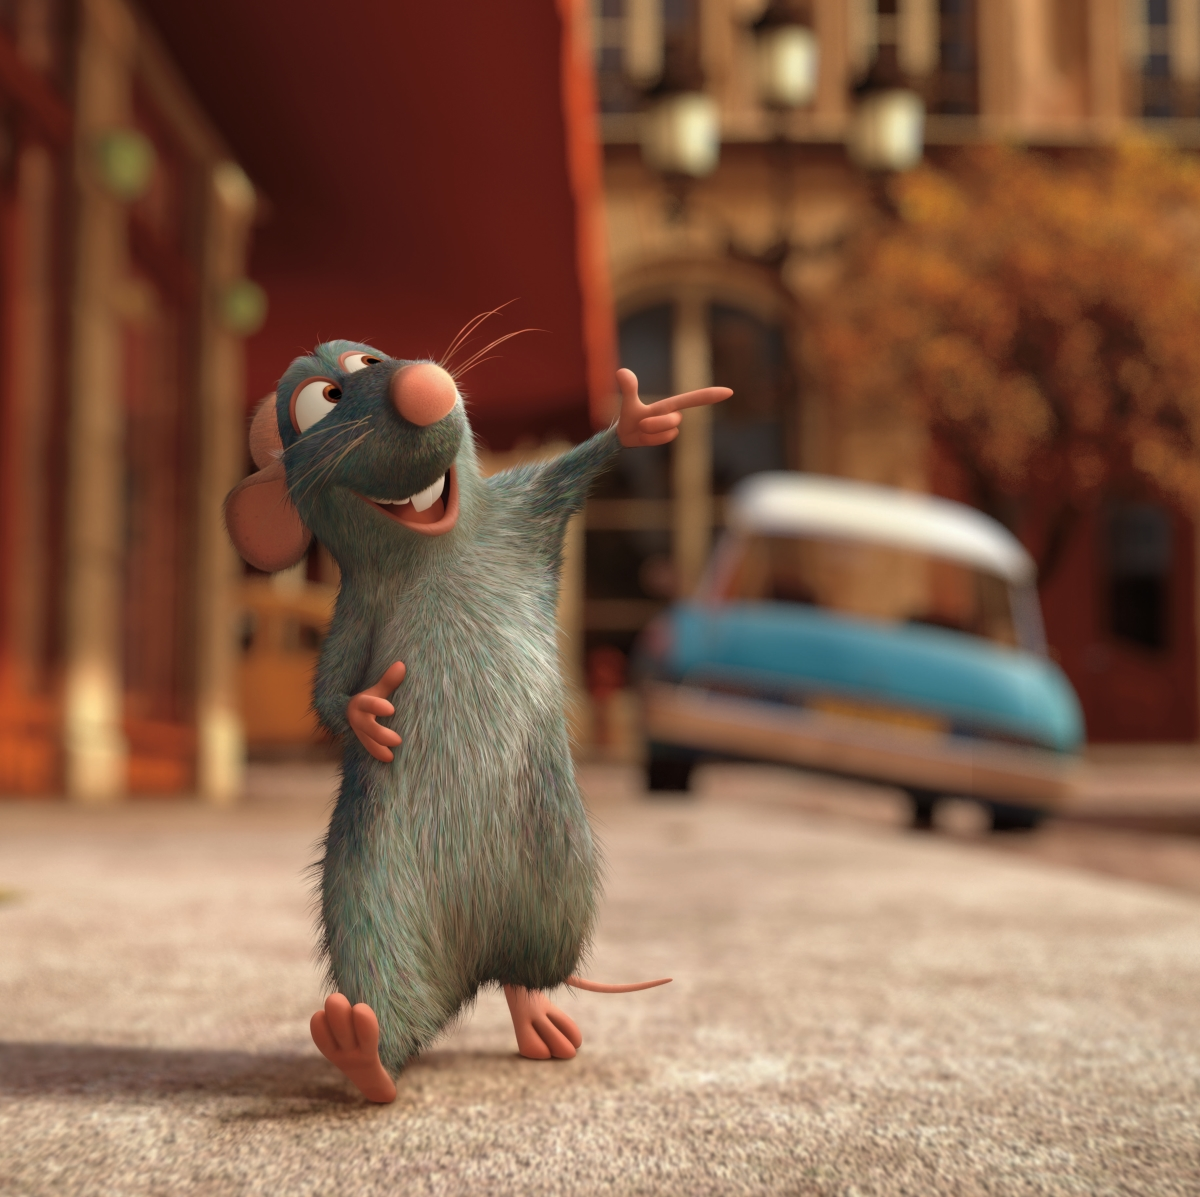 Family Film Club: Ratatouille (PG) + Show and Tell with Joe Sharpe and Zoë Bather, authors of Around the World with the Ingreedies: A Taste Adventure